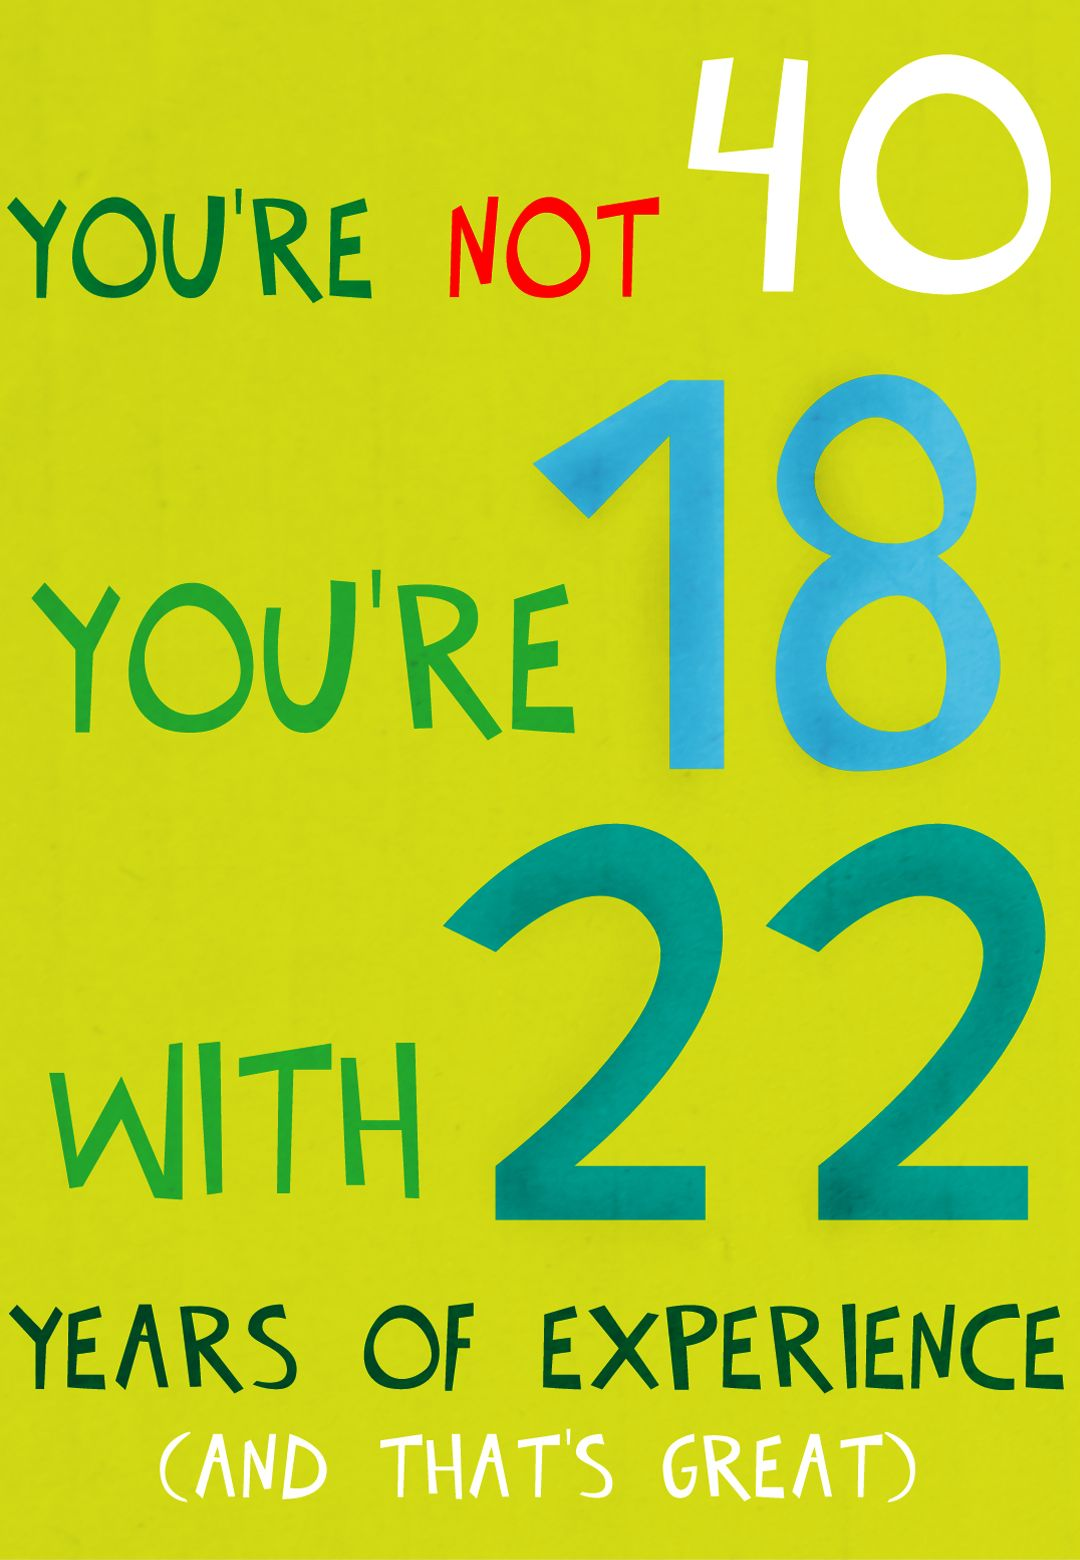 Birthday Card Free Printable Youre Not 40 18 With 22 Years Of Experience